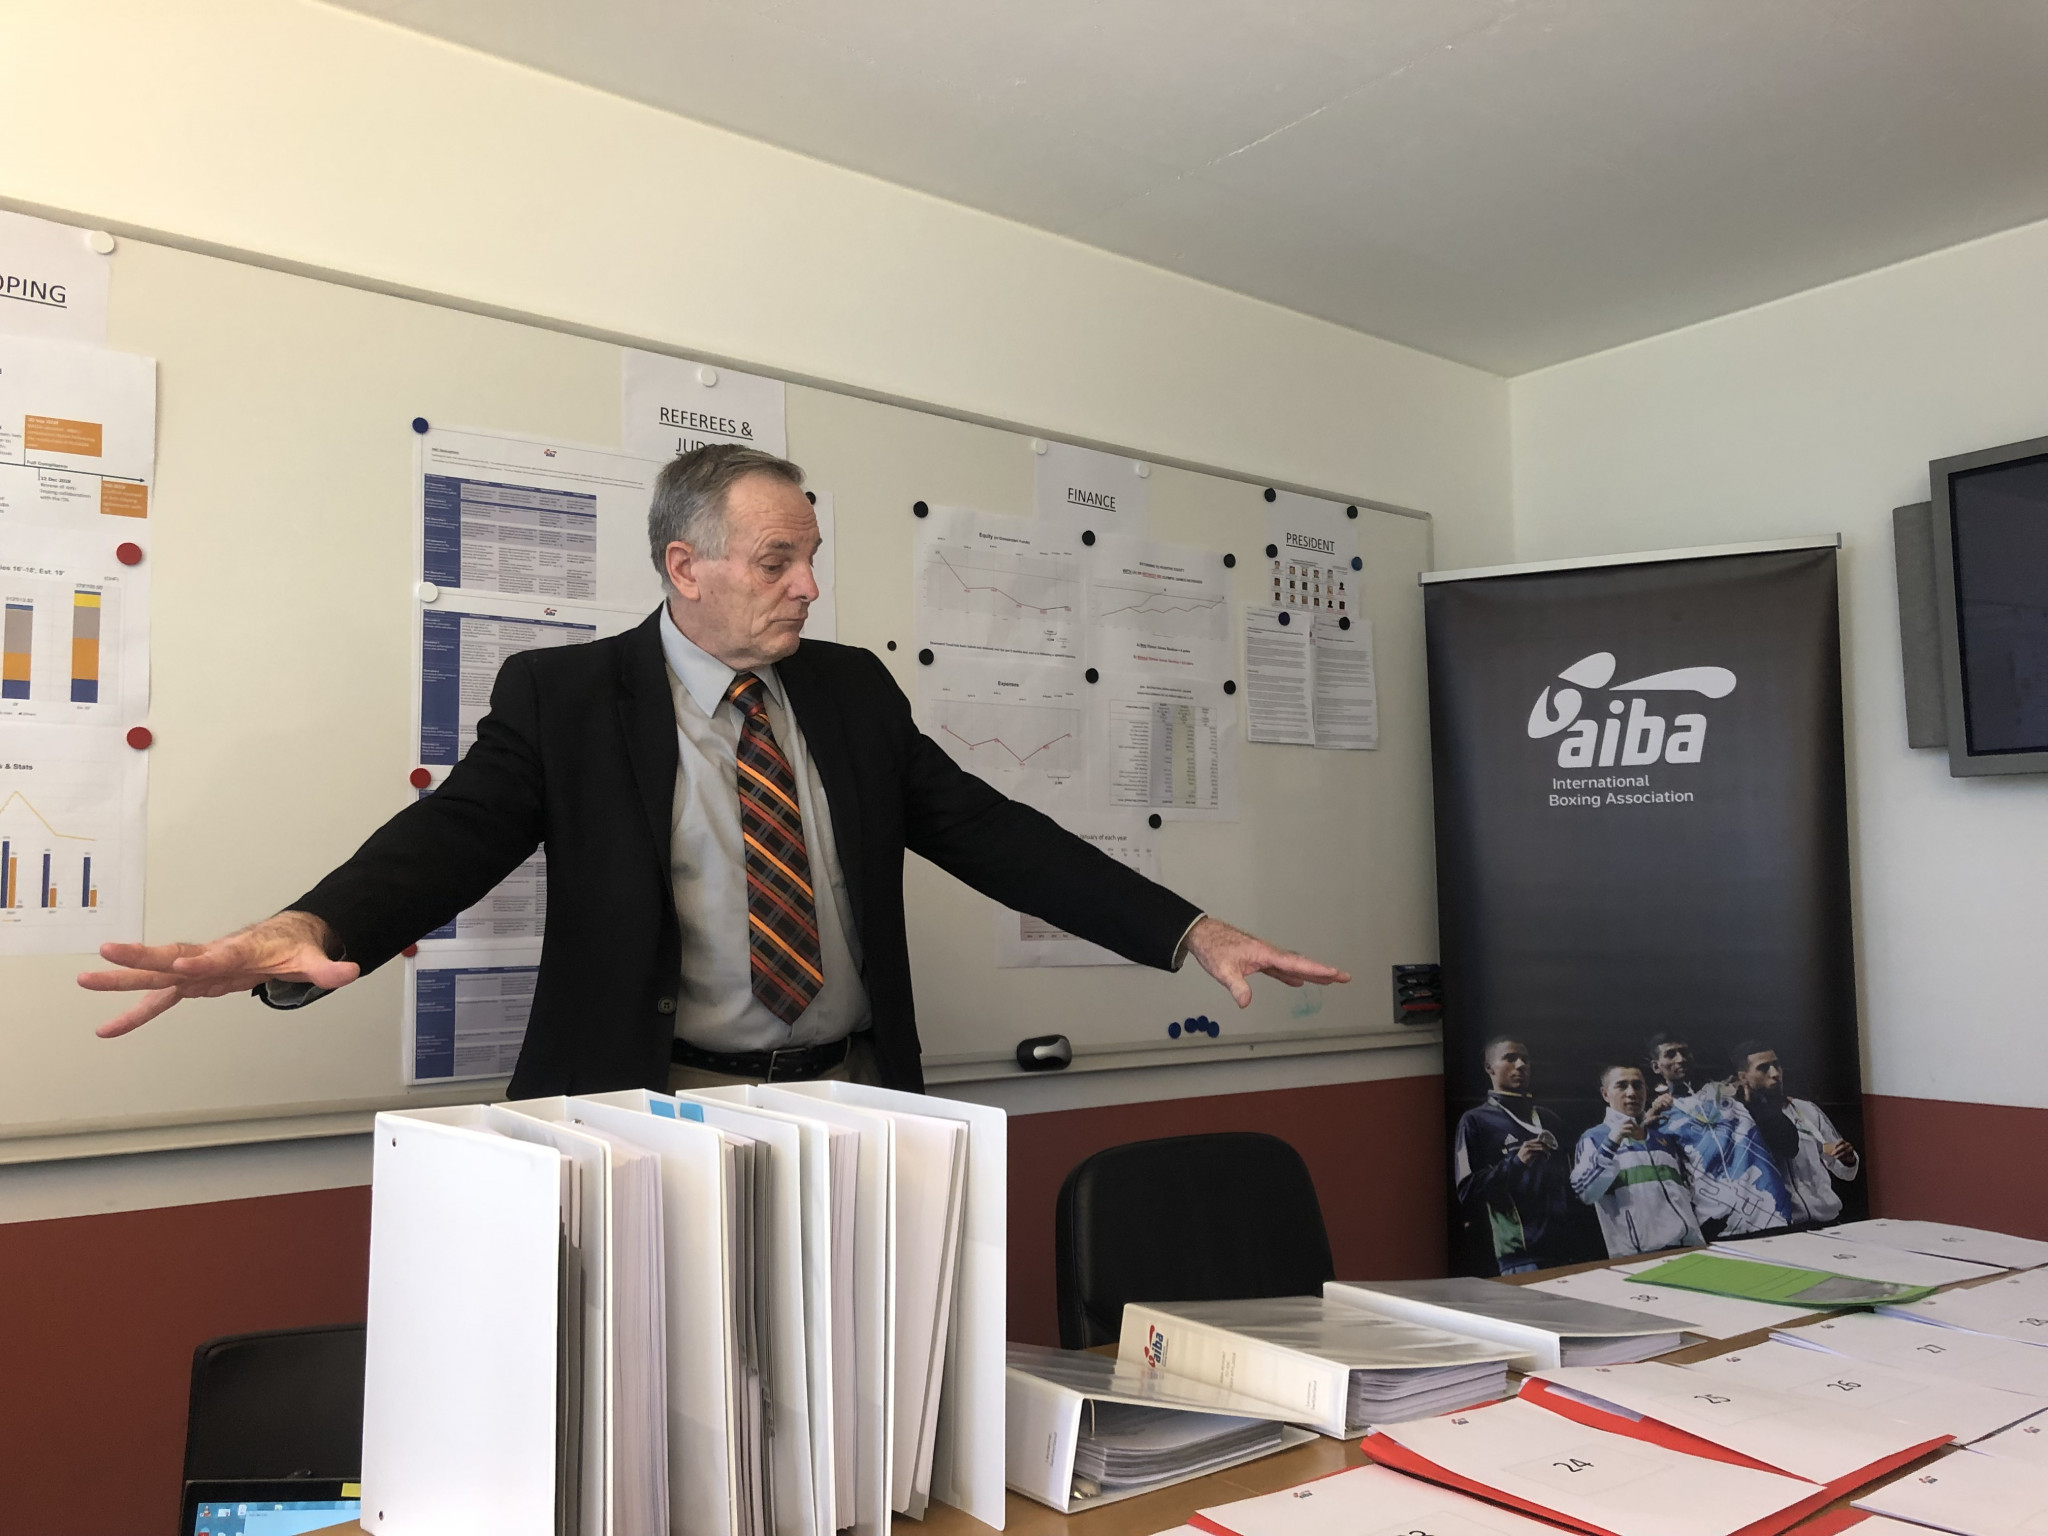 AIBA executive director Tom Virgets shows off all the paperwork he claims will provide answers to the 41 questions the IOC have asked, including about its controversial President Gafur Rakhimov ©ITG